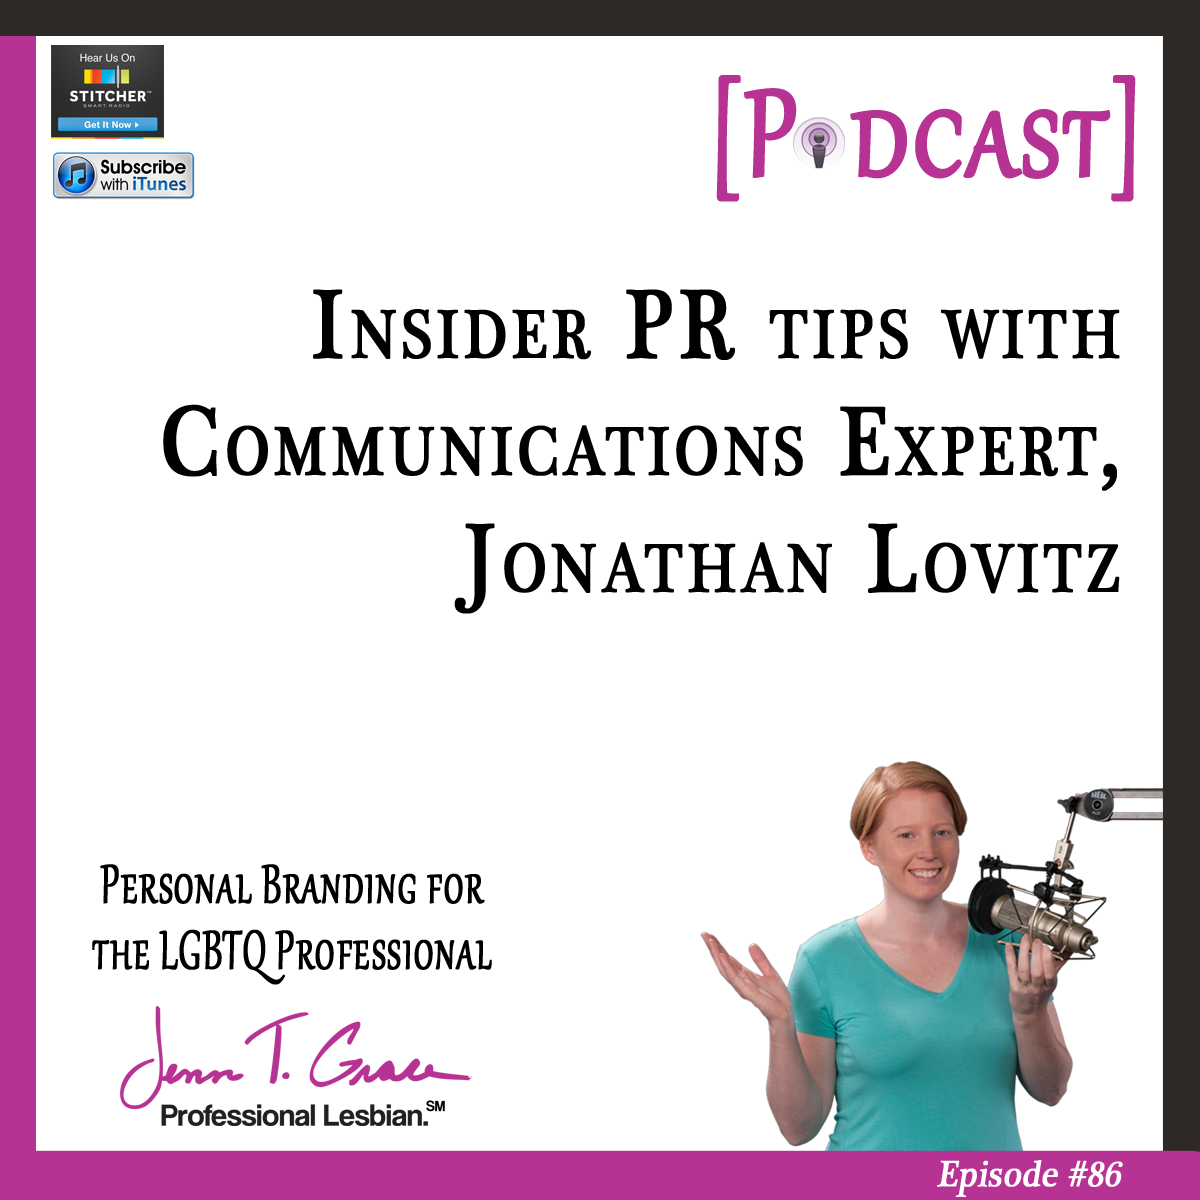 #86: Insider PR Tips with Communications Expert, Jonathan Lovitz [Podcast]